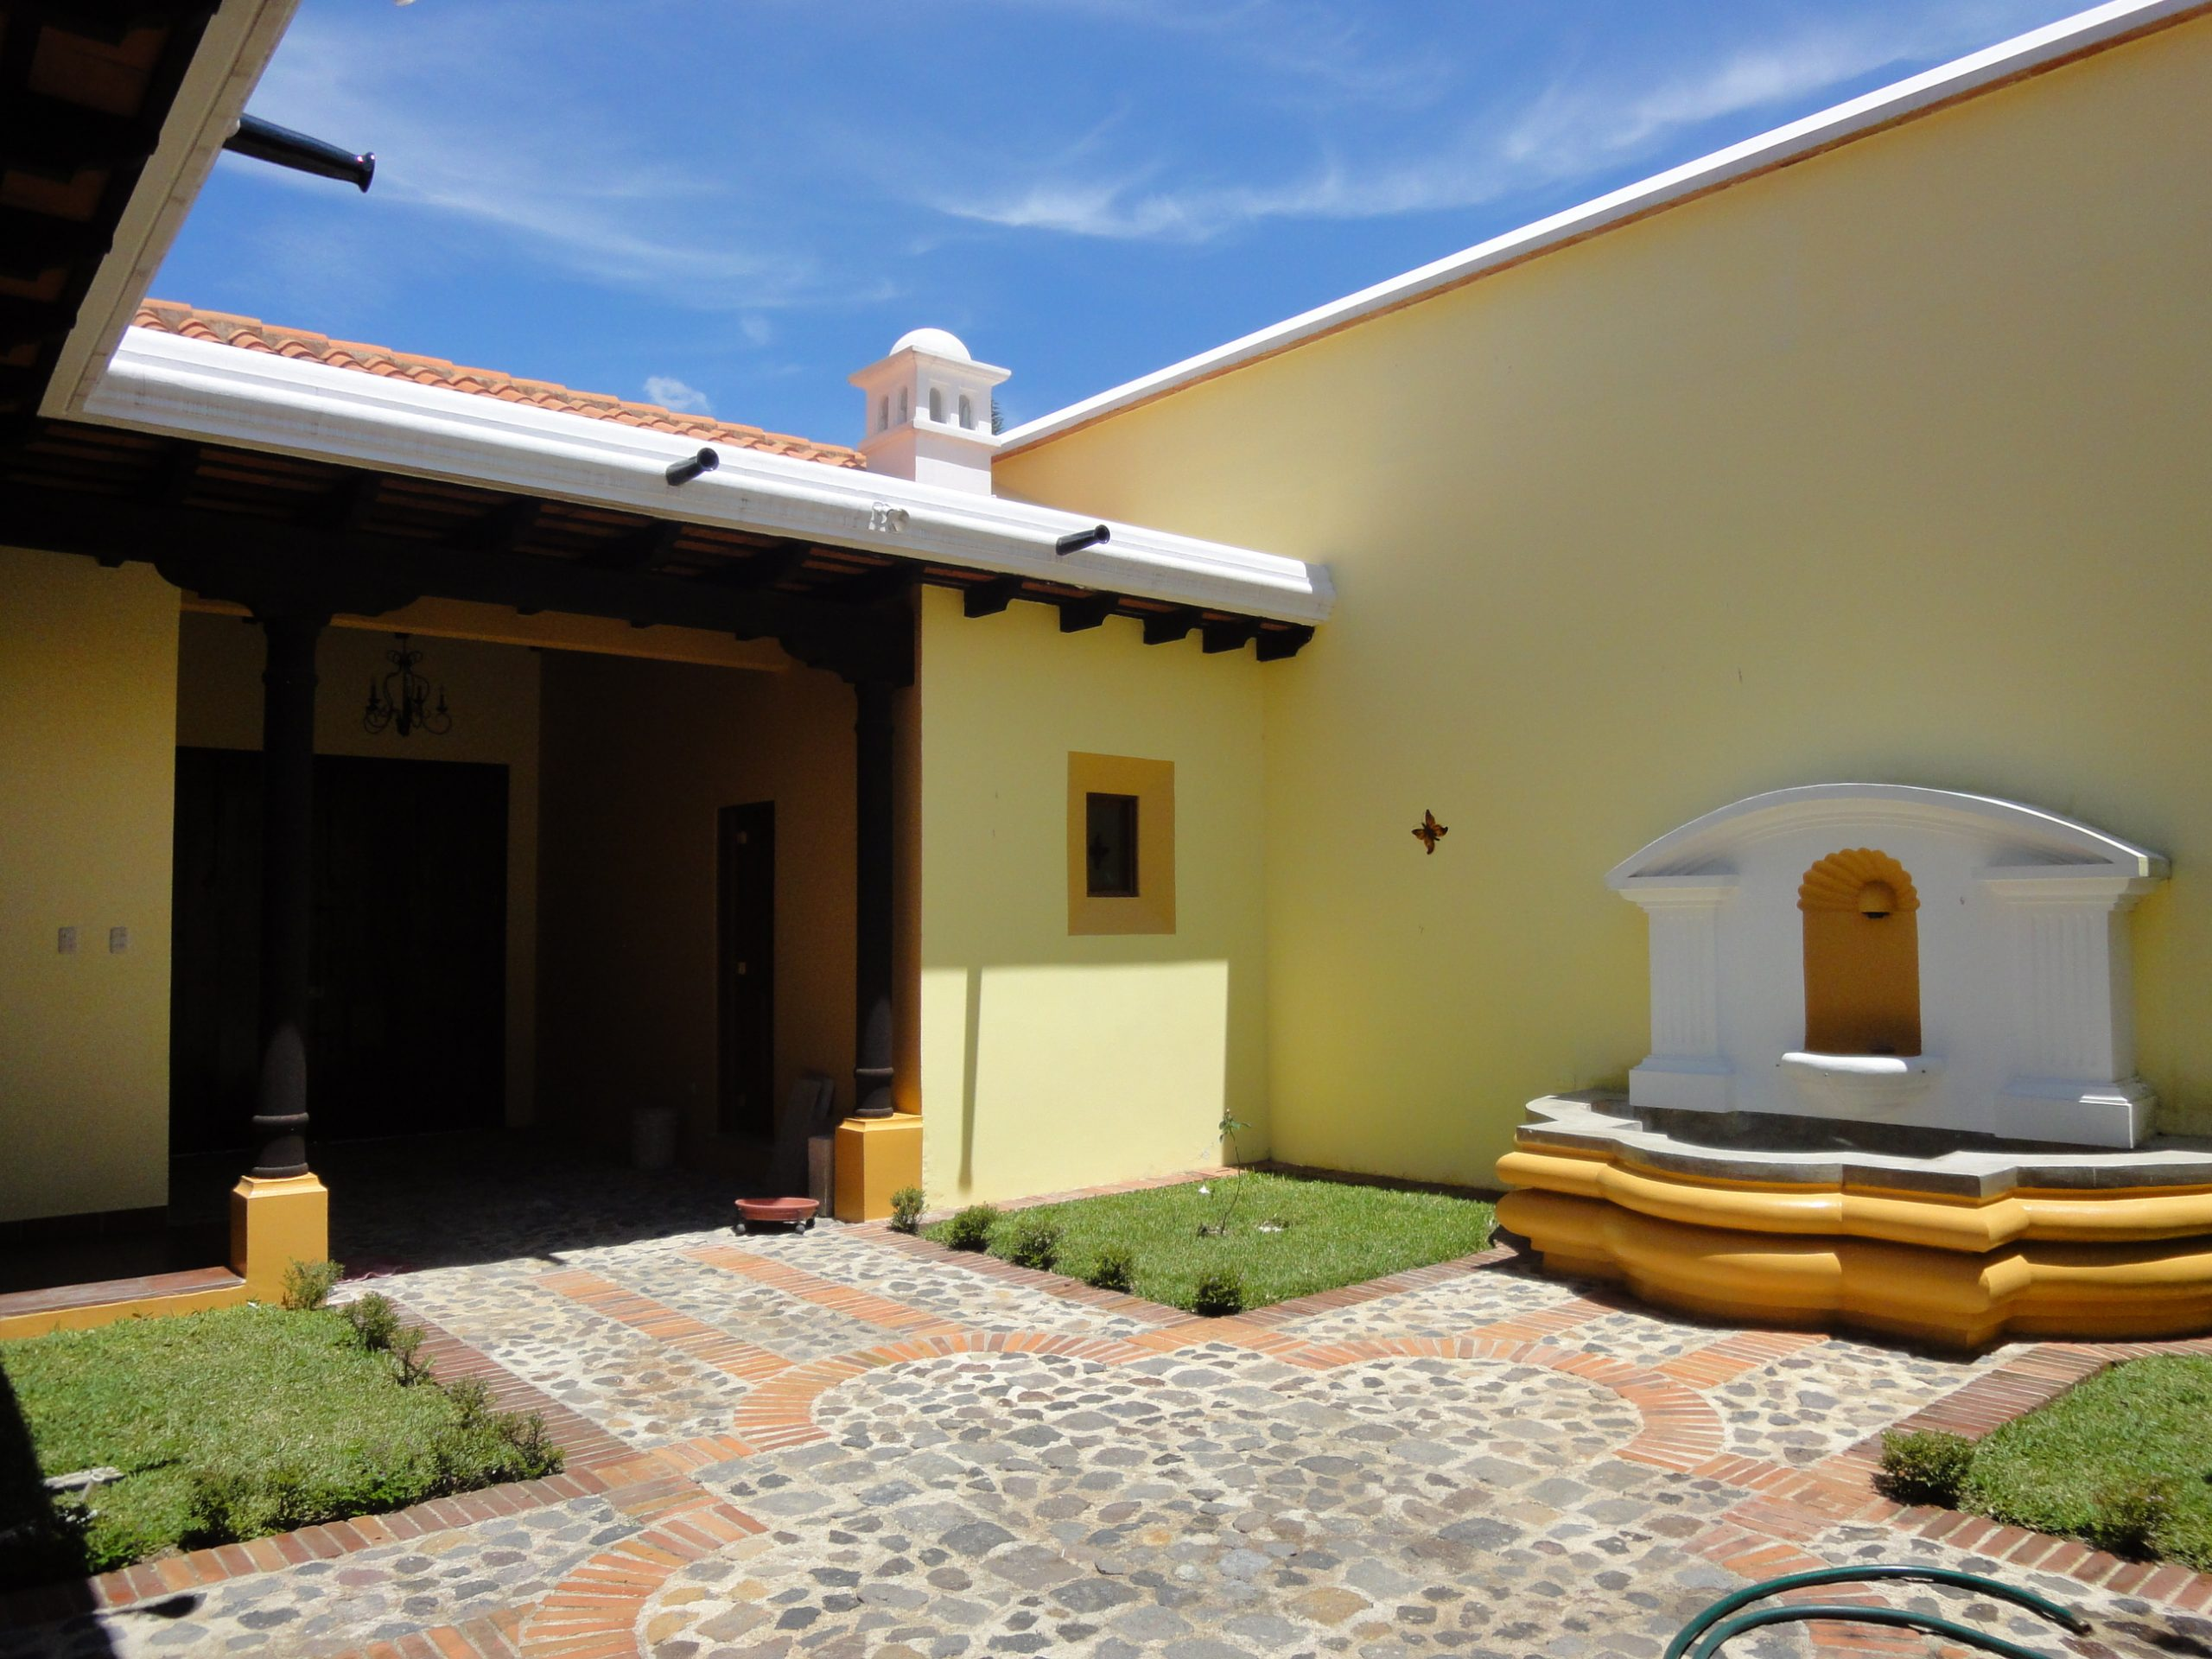 3052 AMPLE HOUSE FOR RENT IN ANTIGUA GUATEMALA